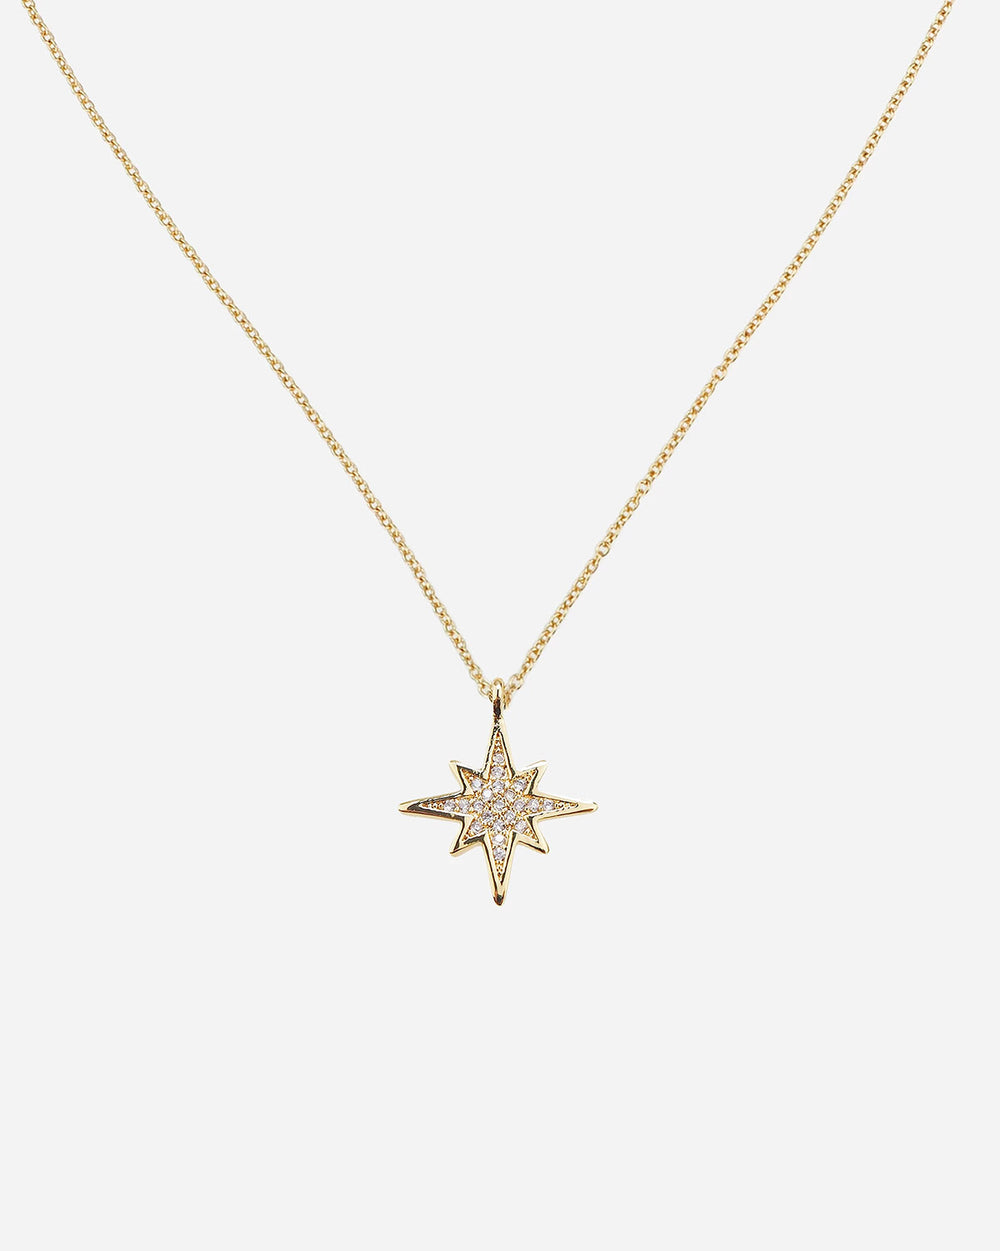 Bette Delicate Pavé Star Necklace